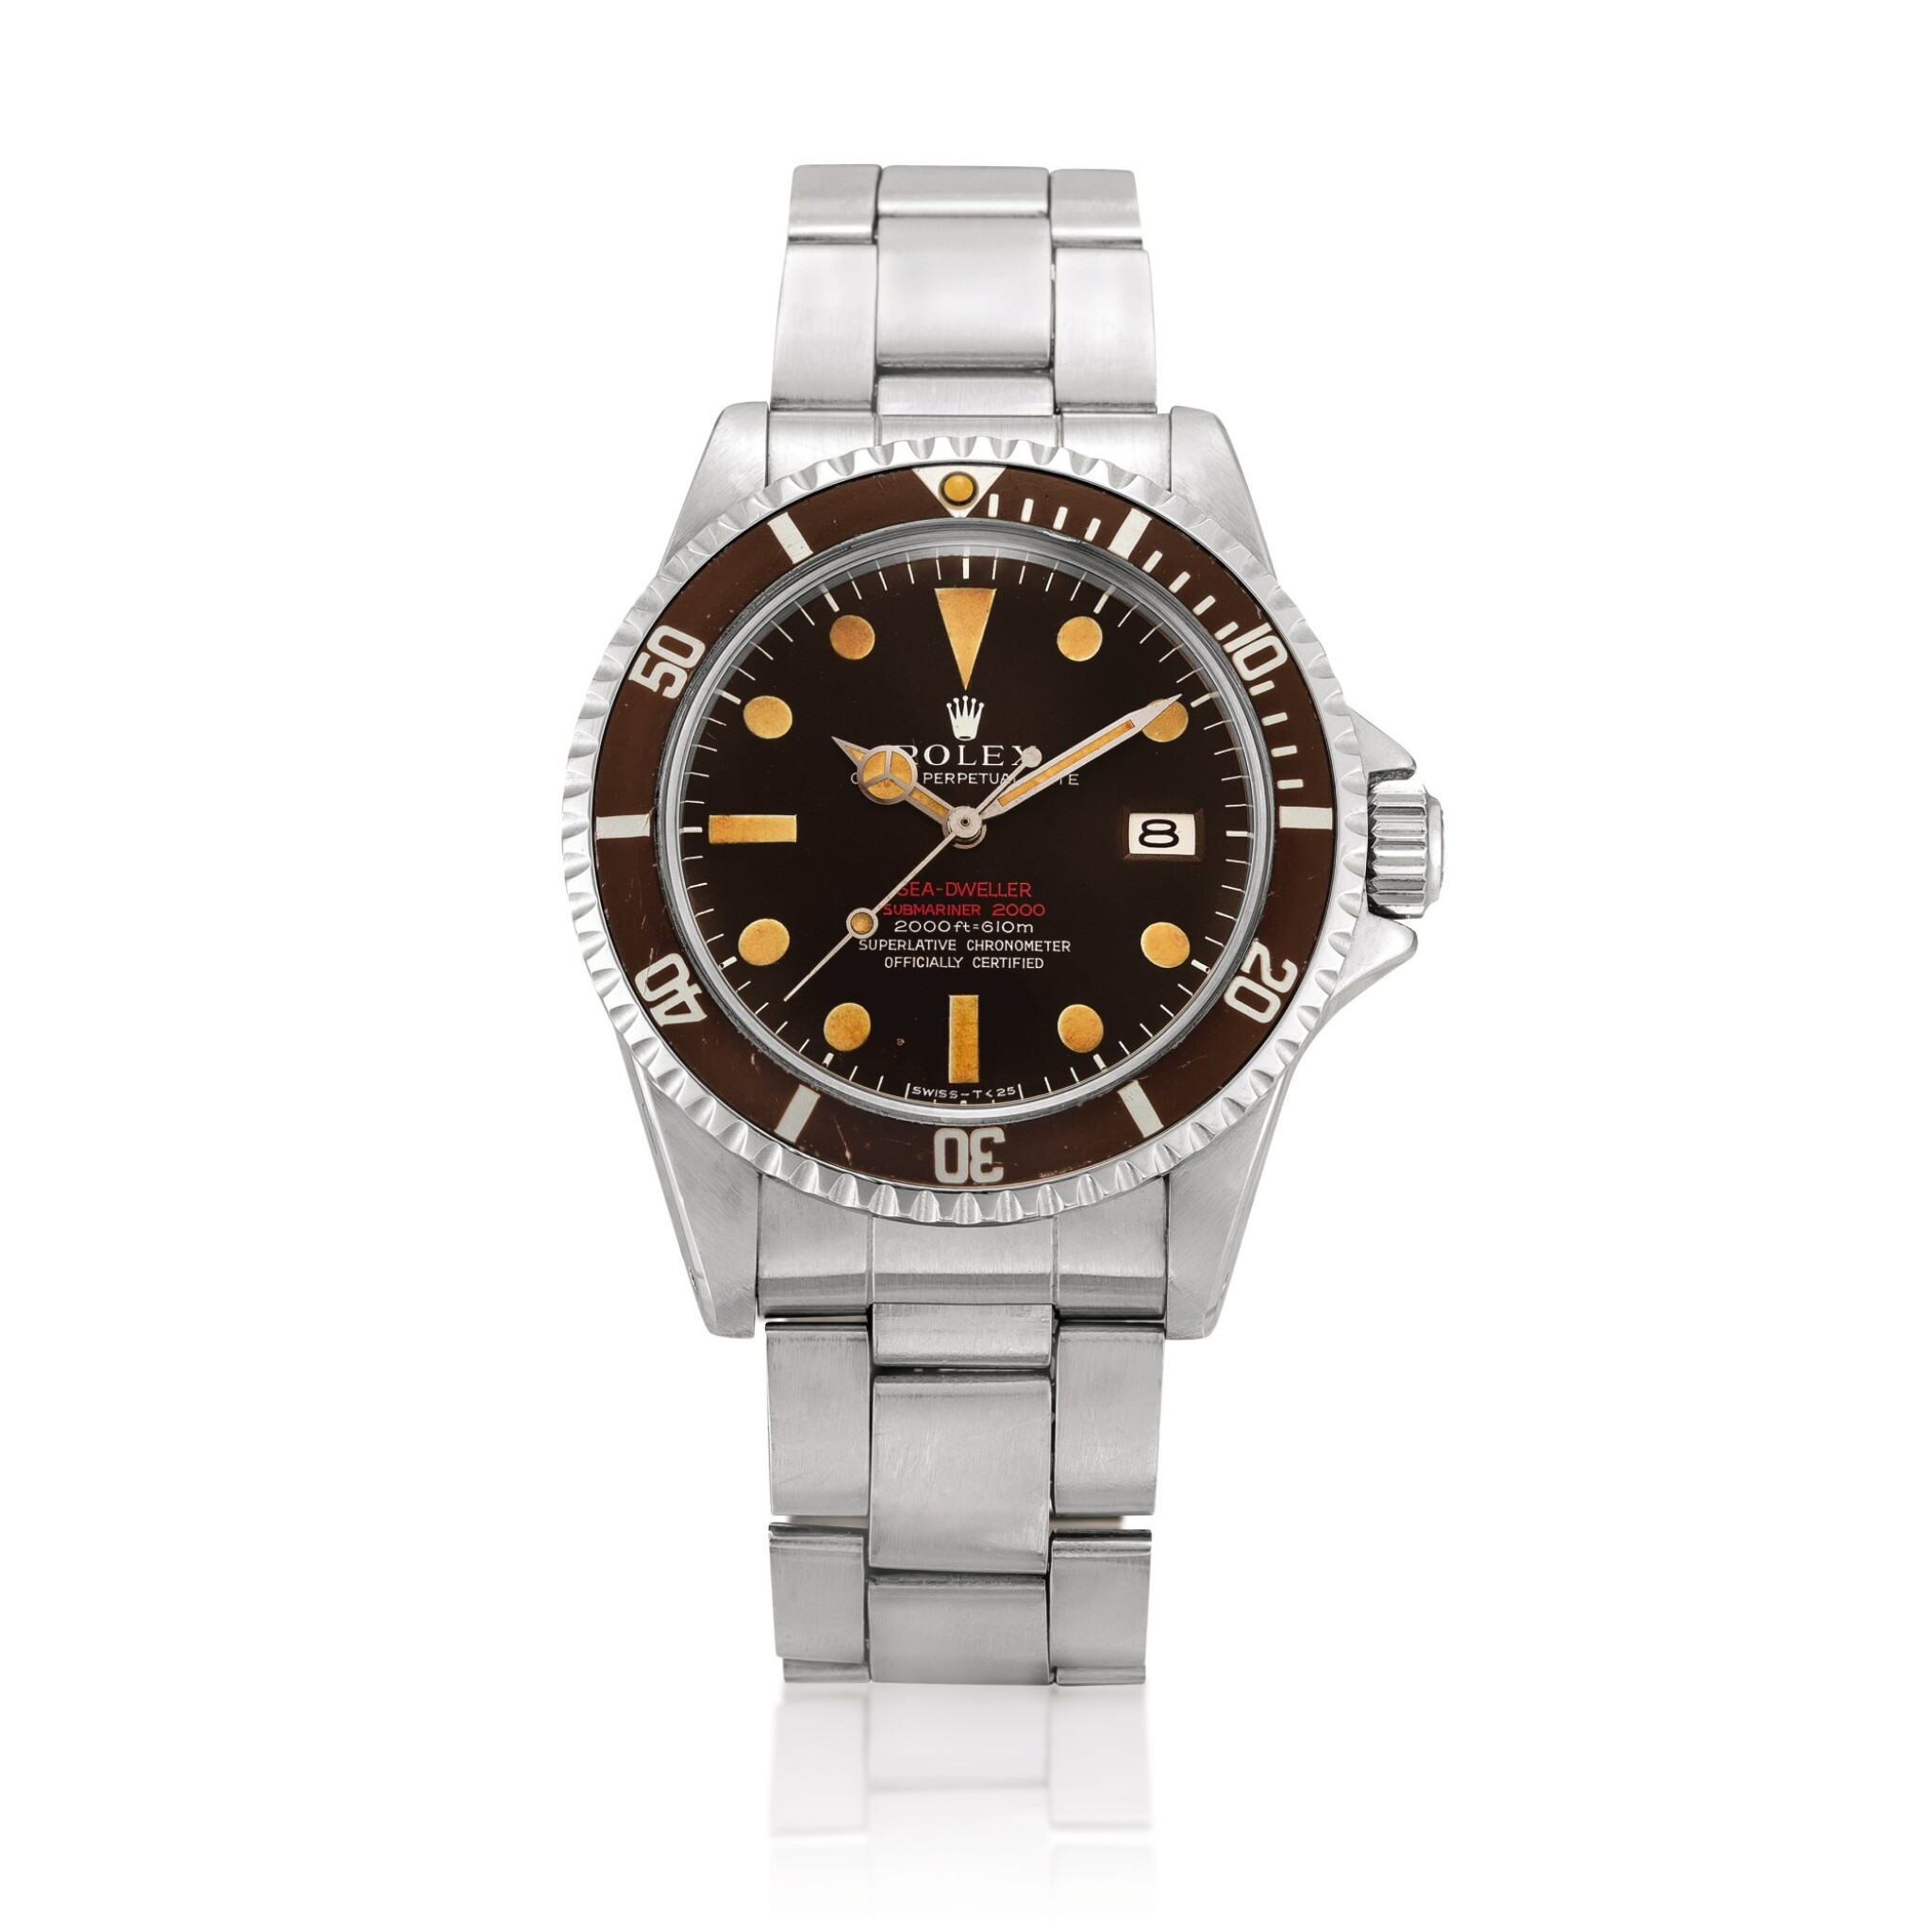 View full screen - View 1 of Lot 2270. Rolex | 'Double Red' Sea-Dweller, Reference 1665, A stainless steel wristwatch with tropical dial, date and bracelet, Circa 1972 | 勞力士 | 'Double Red' Sea-Dweller 型號1665  精鋼鏈帶腕錶,備日期顯示及棕式錶盤,約1972年製.